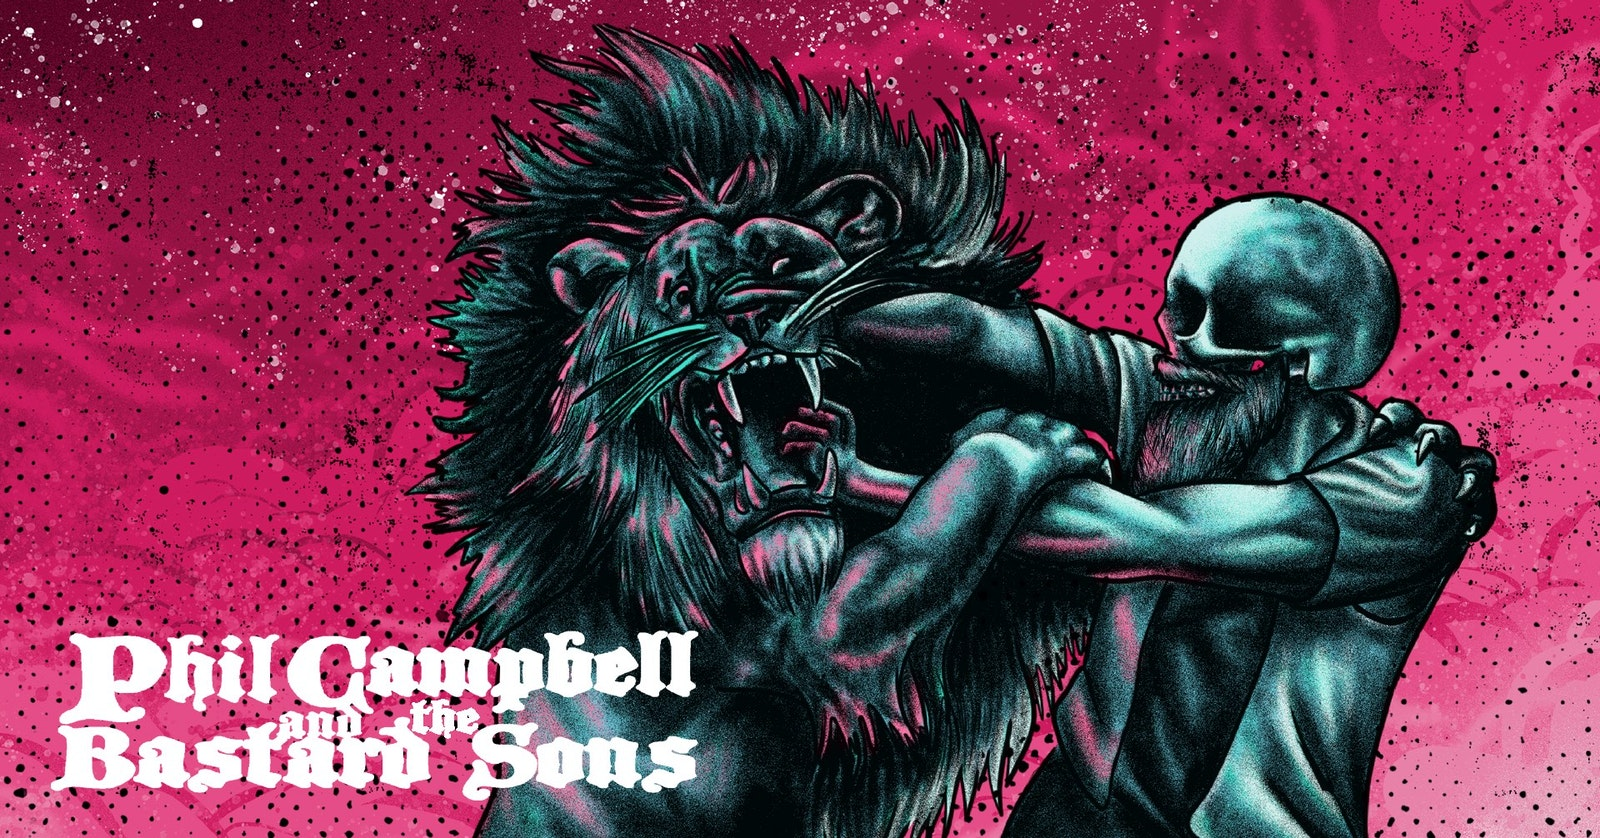 Phil Campbell and the Bastard Sons | Independent, Sunderland